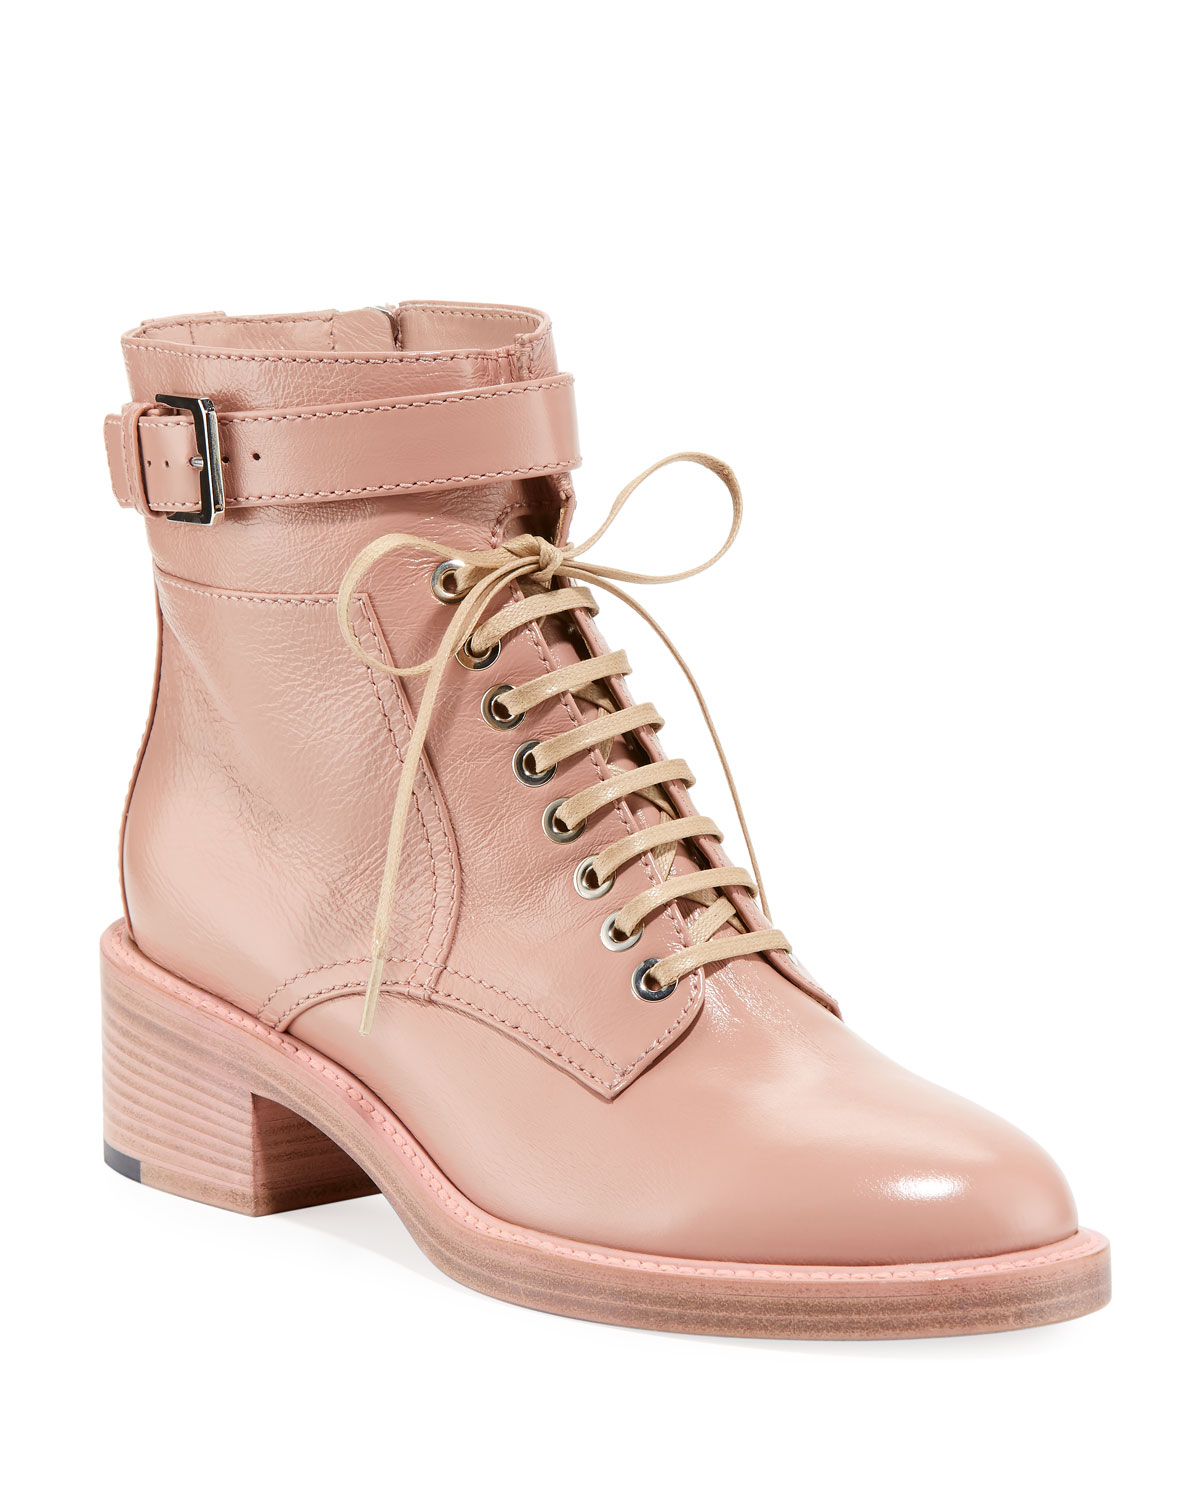 Pink lace up combat boots